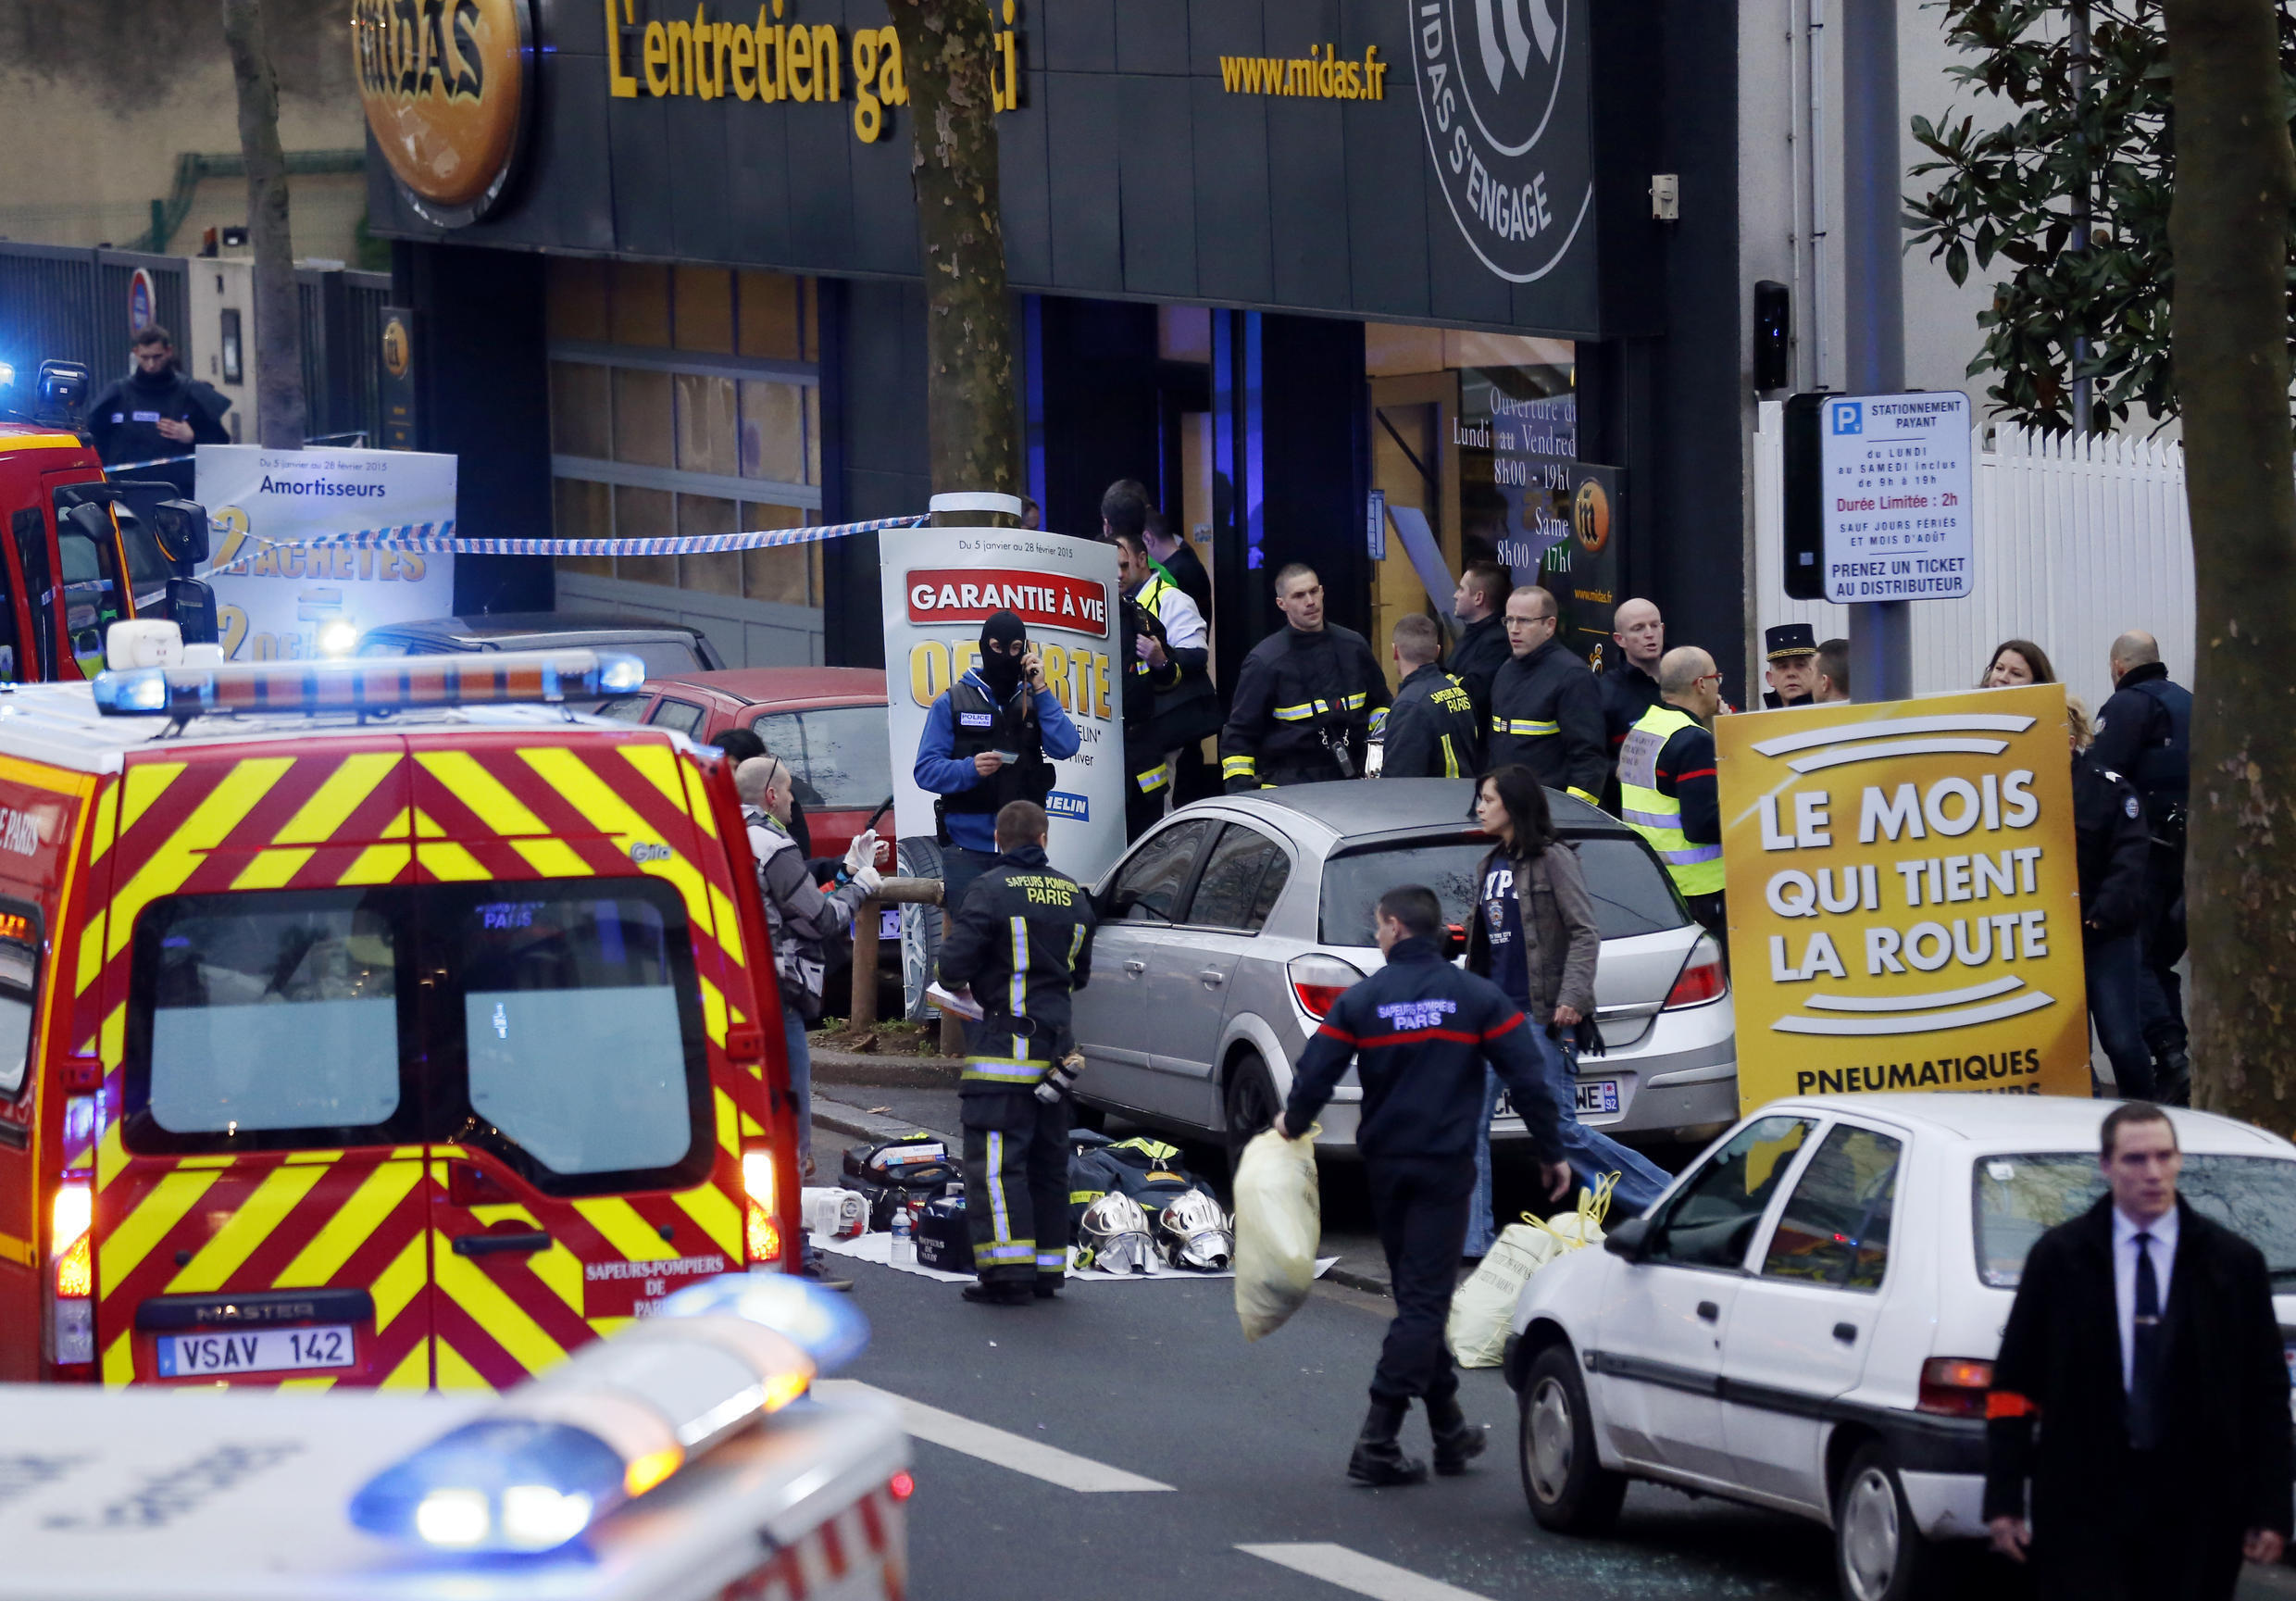 The scene of the shooting in Châtillon